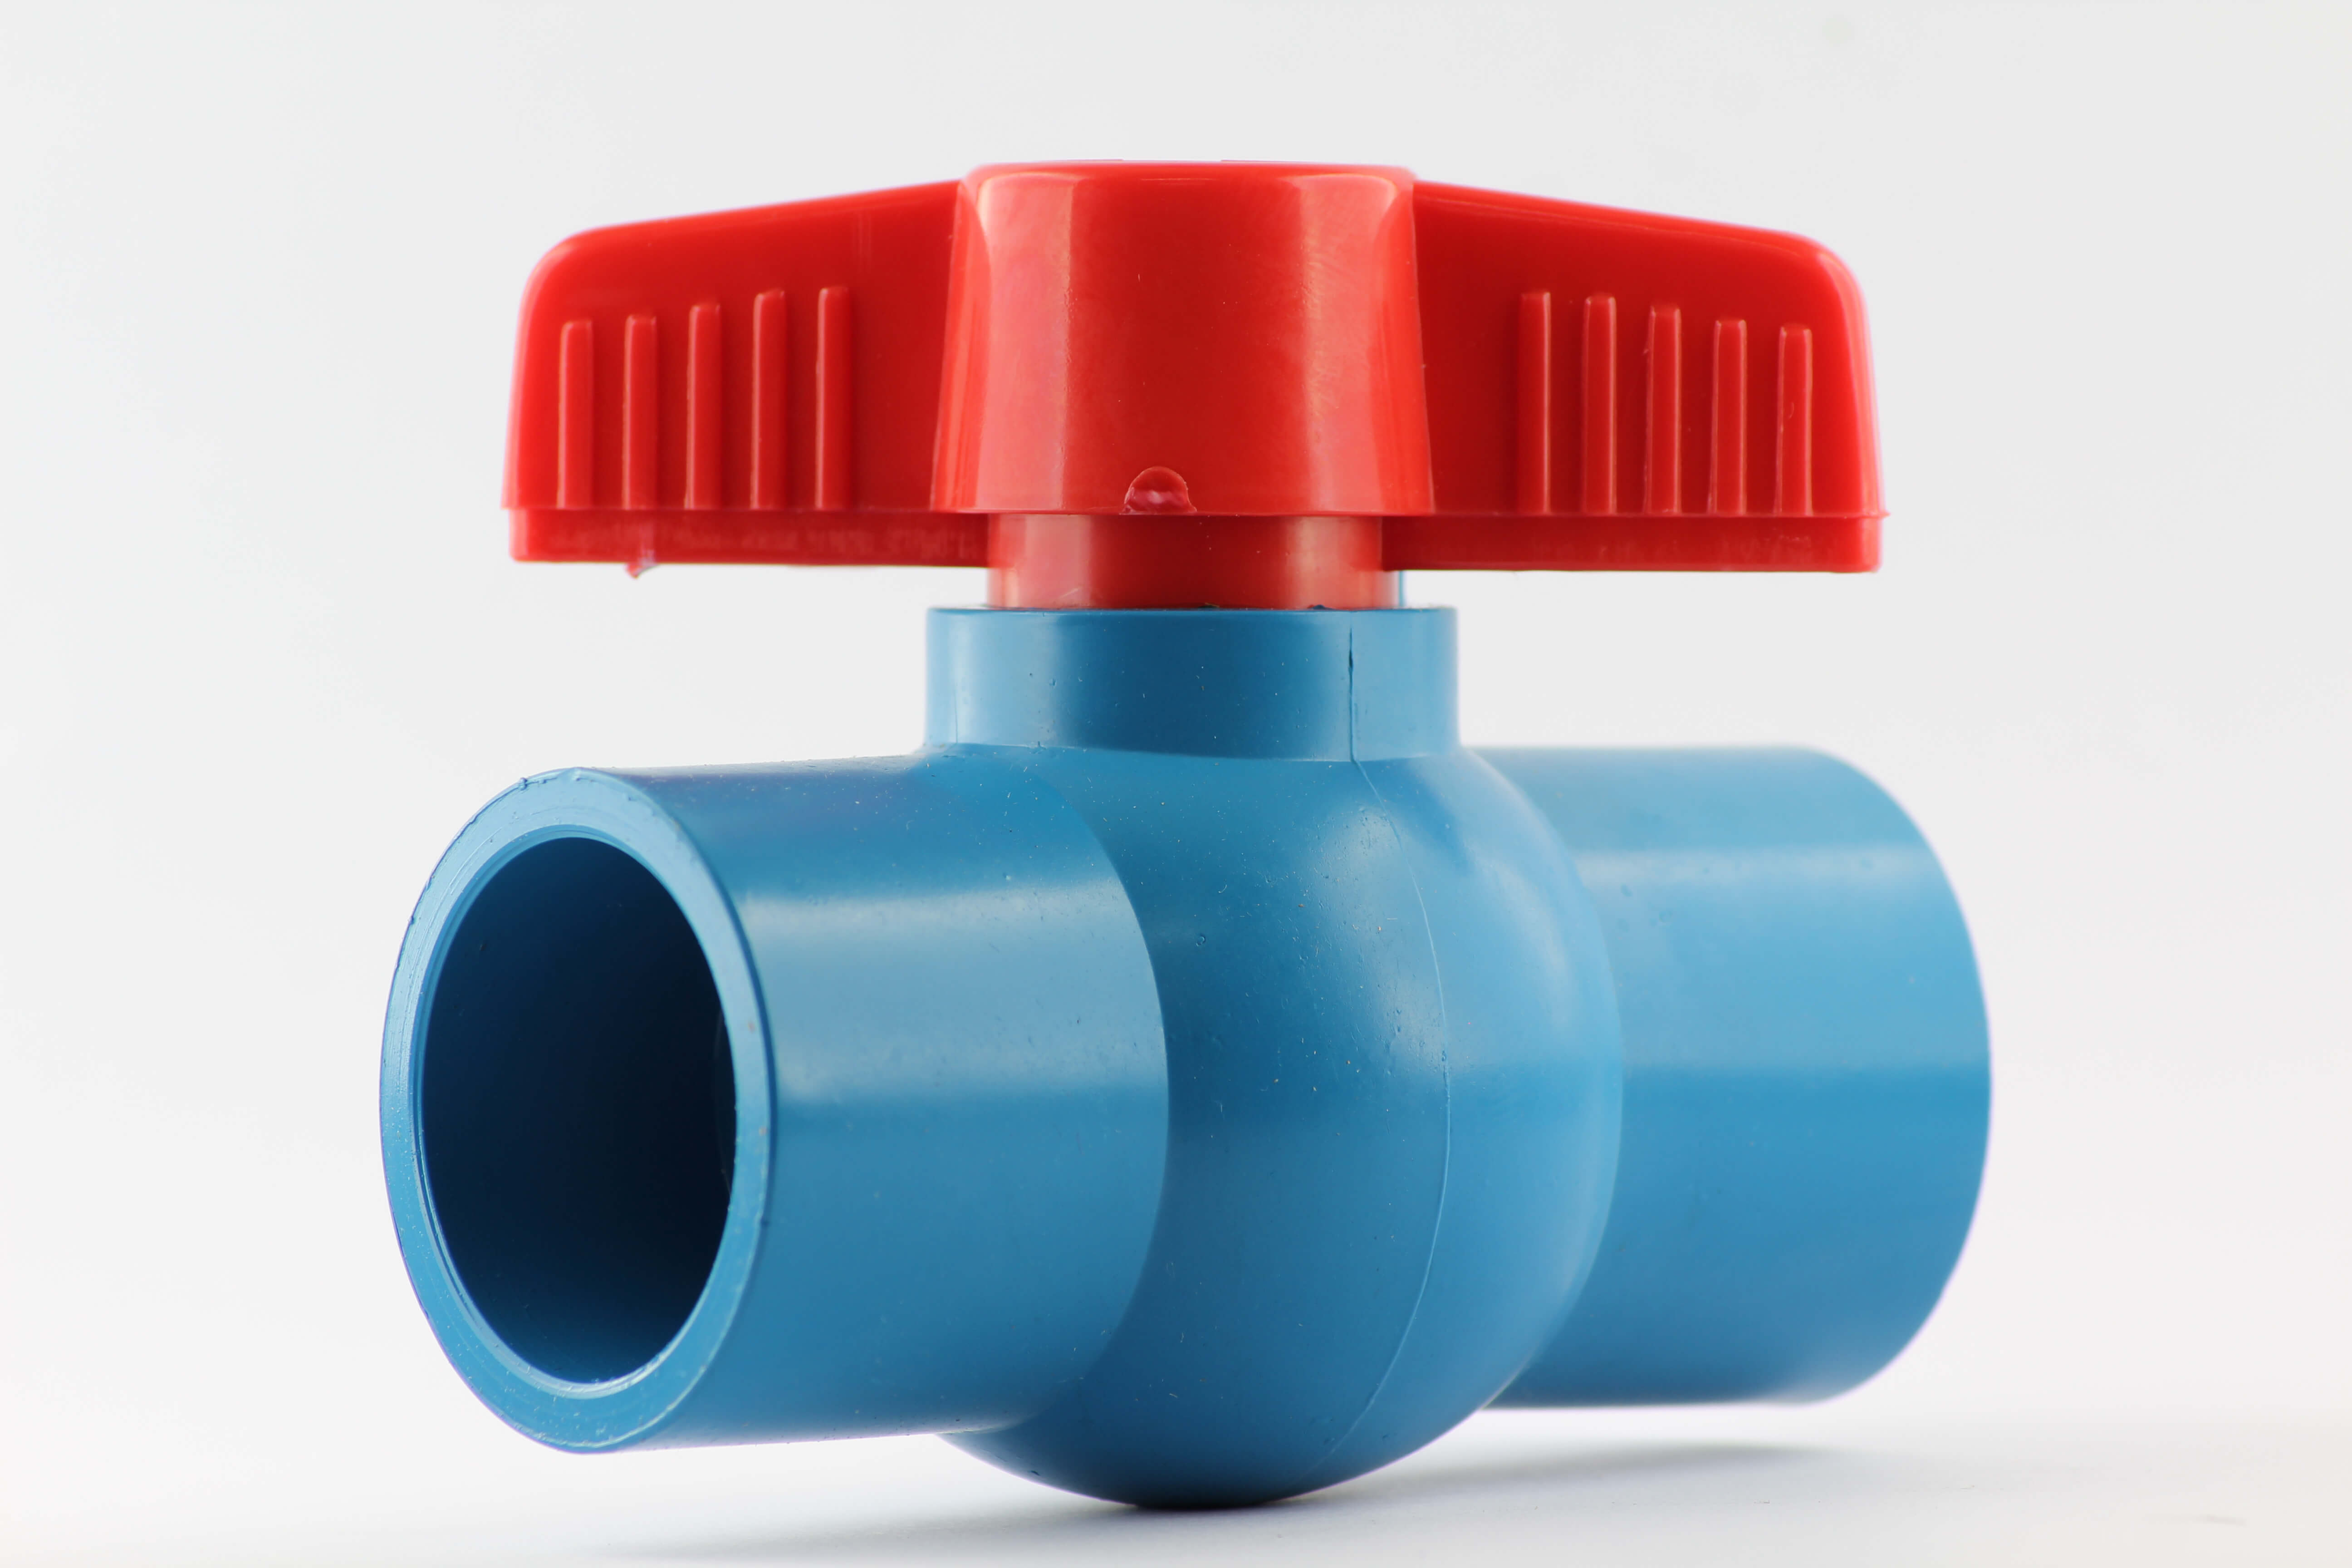 And the Medal Goes to: The Advantages and Disadvantages of Plastic Valves